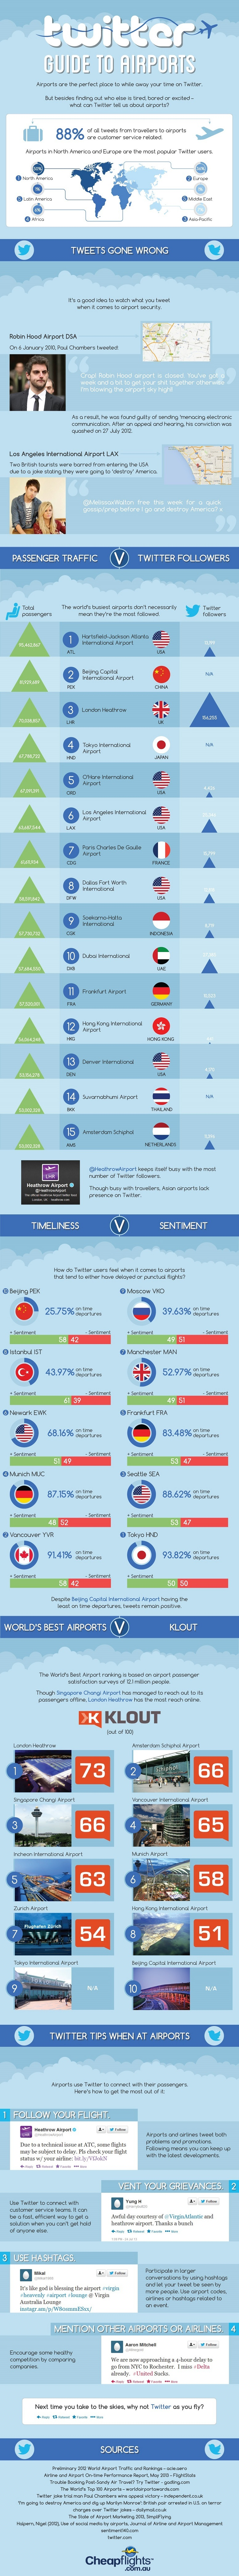 A Twitter Guide To Airports [Infographic]